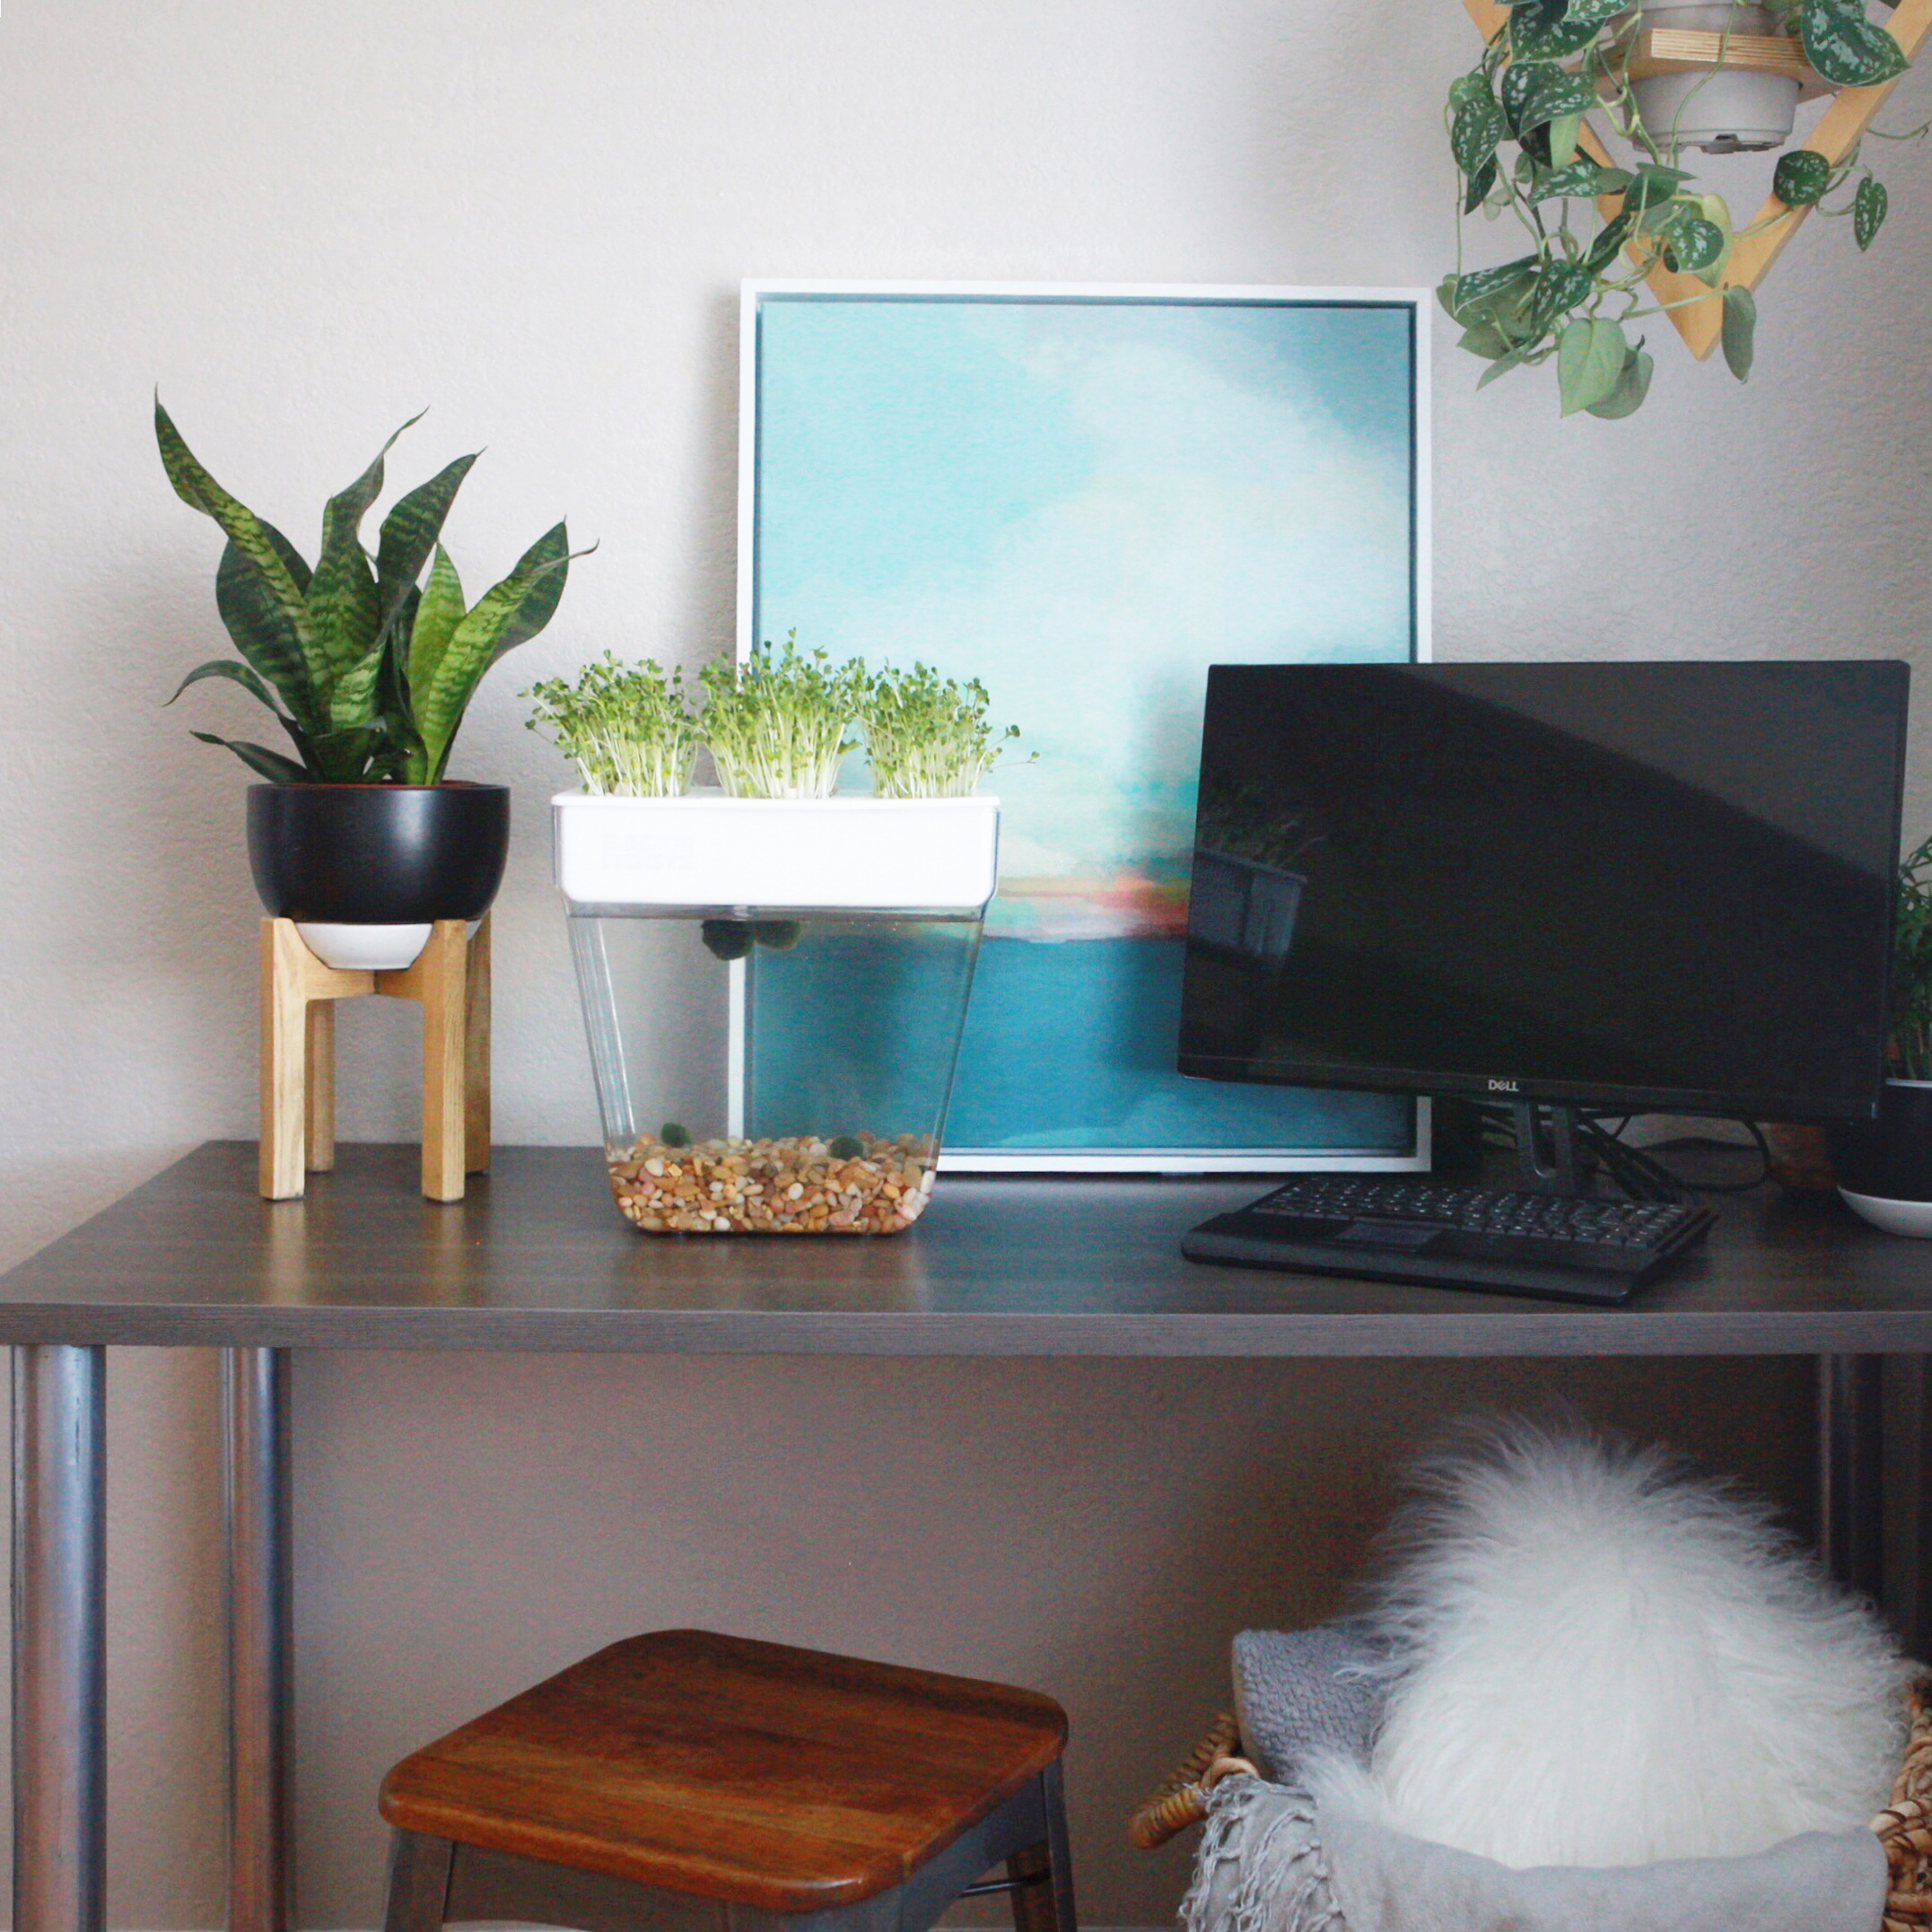 5 Health Benefits Of Growing Indoor Plants Back To The Roots Blog